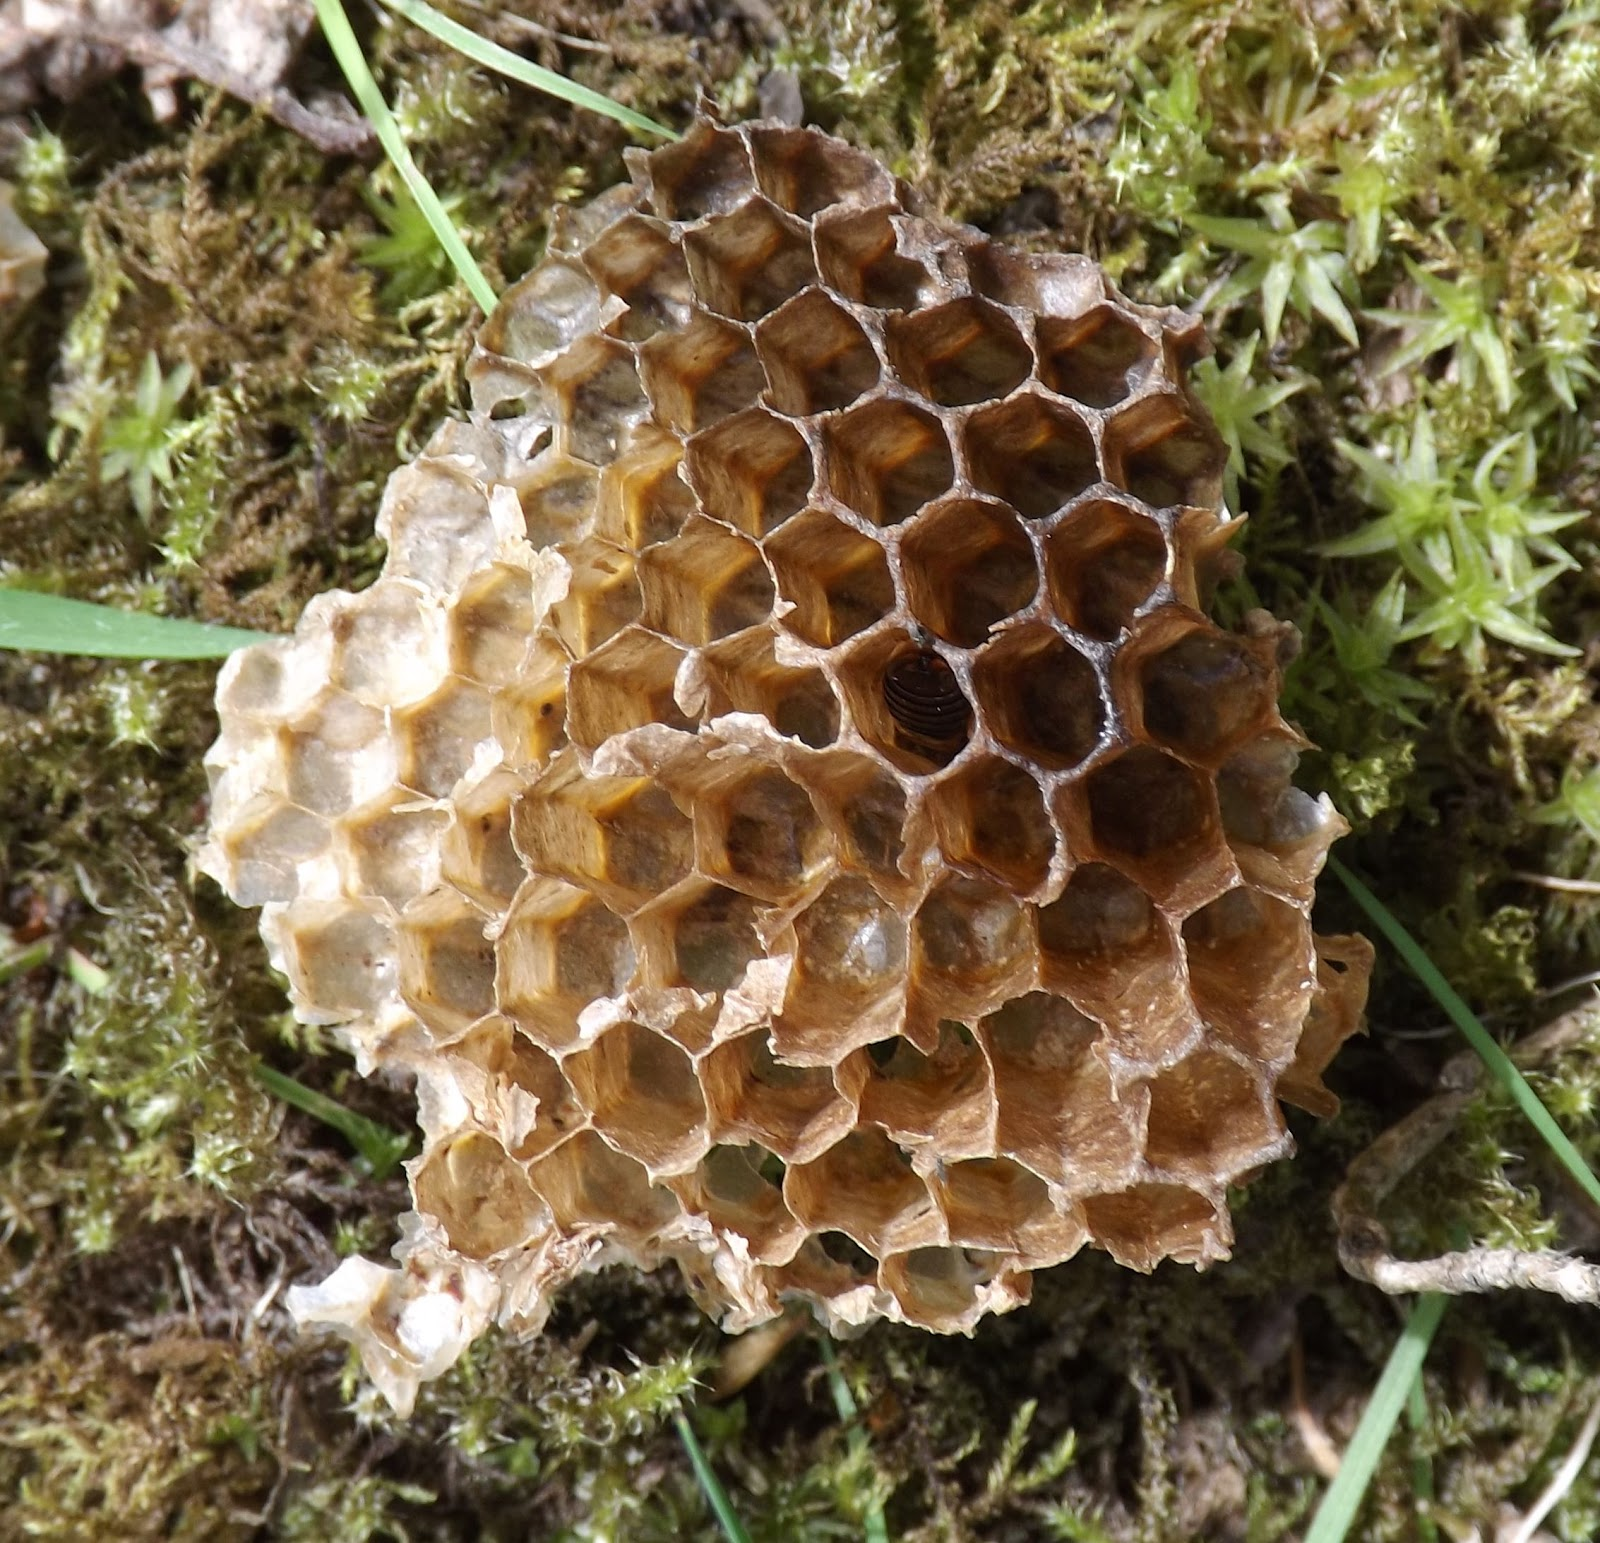 Some honeycomb from a wild bee hive